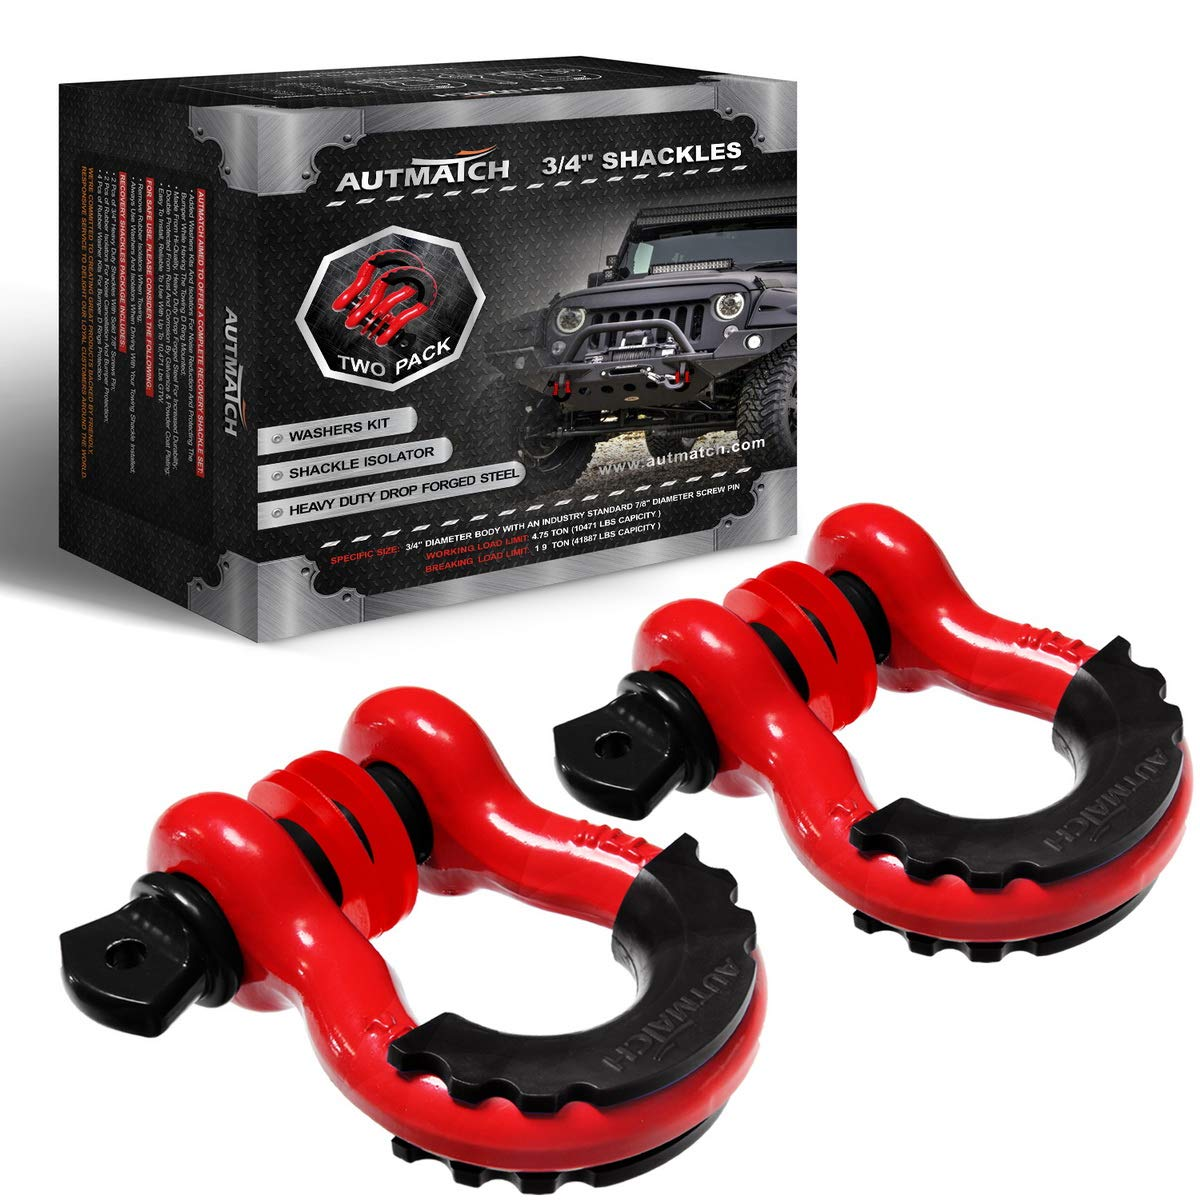 AUTMATCH Shackles 3/4'' D Ring Shackle (2 Pack) 41,887Ib Break Strength with 7/8'' Screw Pin and Shackle Isolator & Washers Kit for Tow Strap Winch Off Road Towing Jeep Vehicle Recovery Red & Black